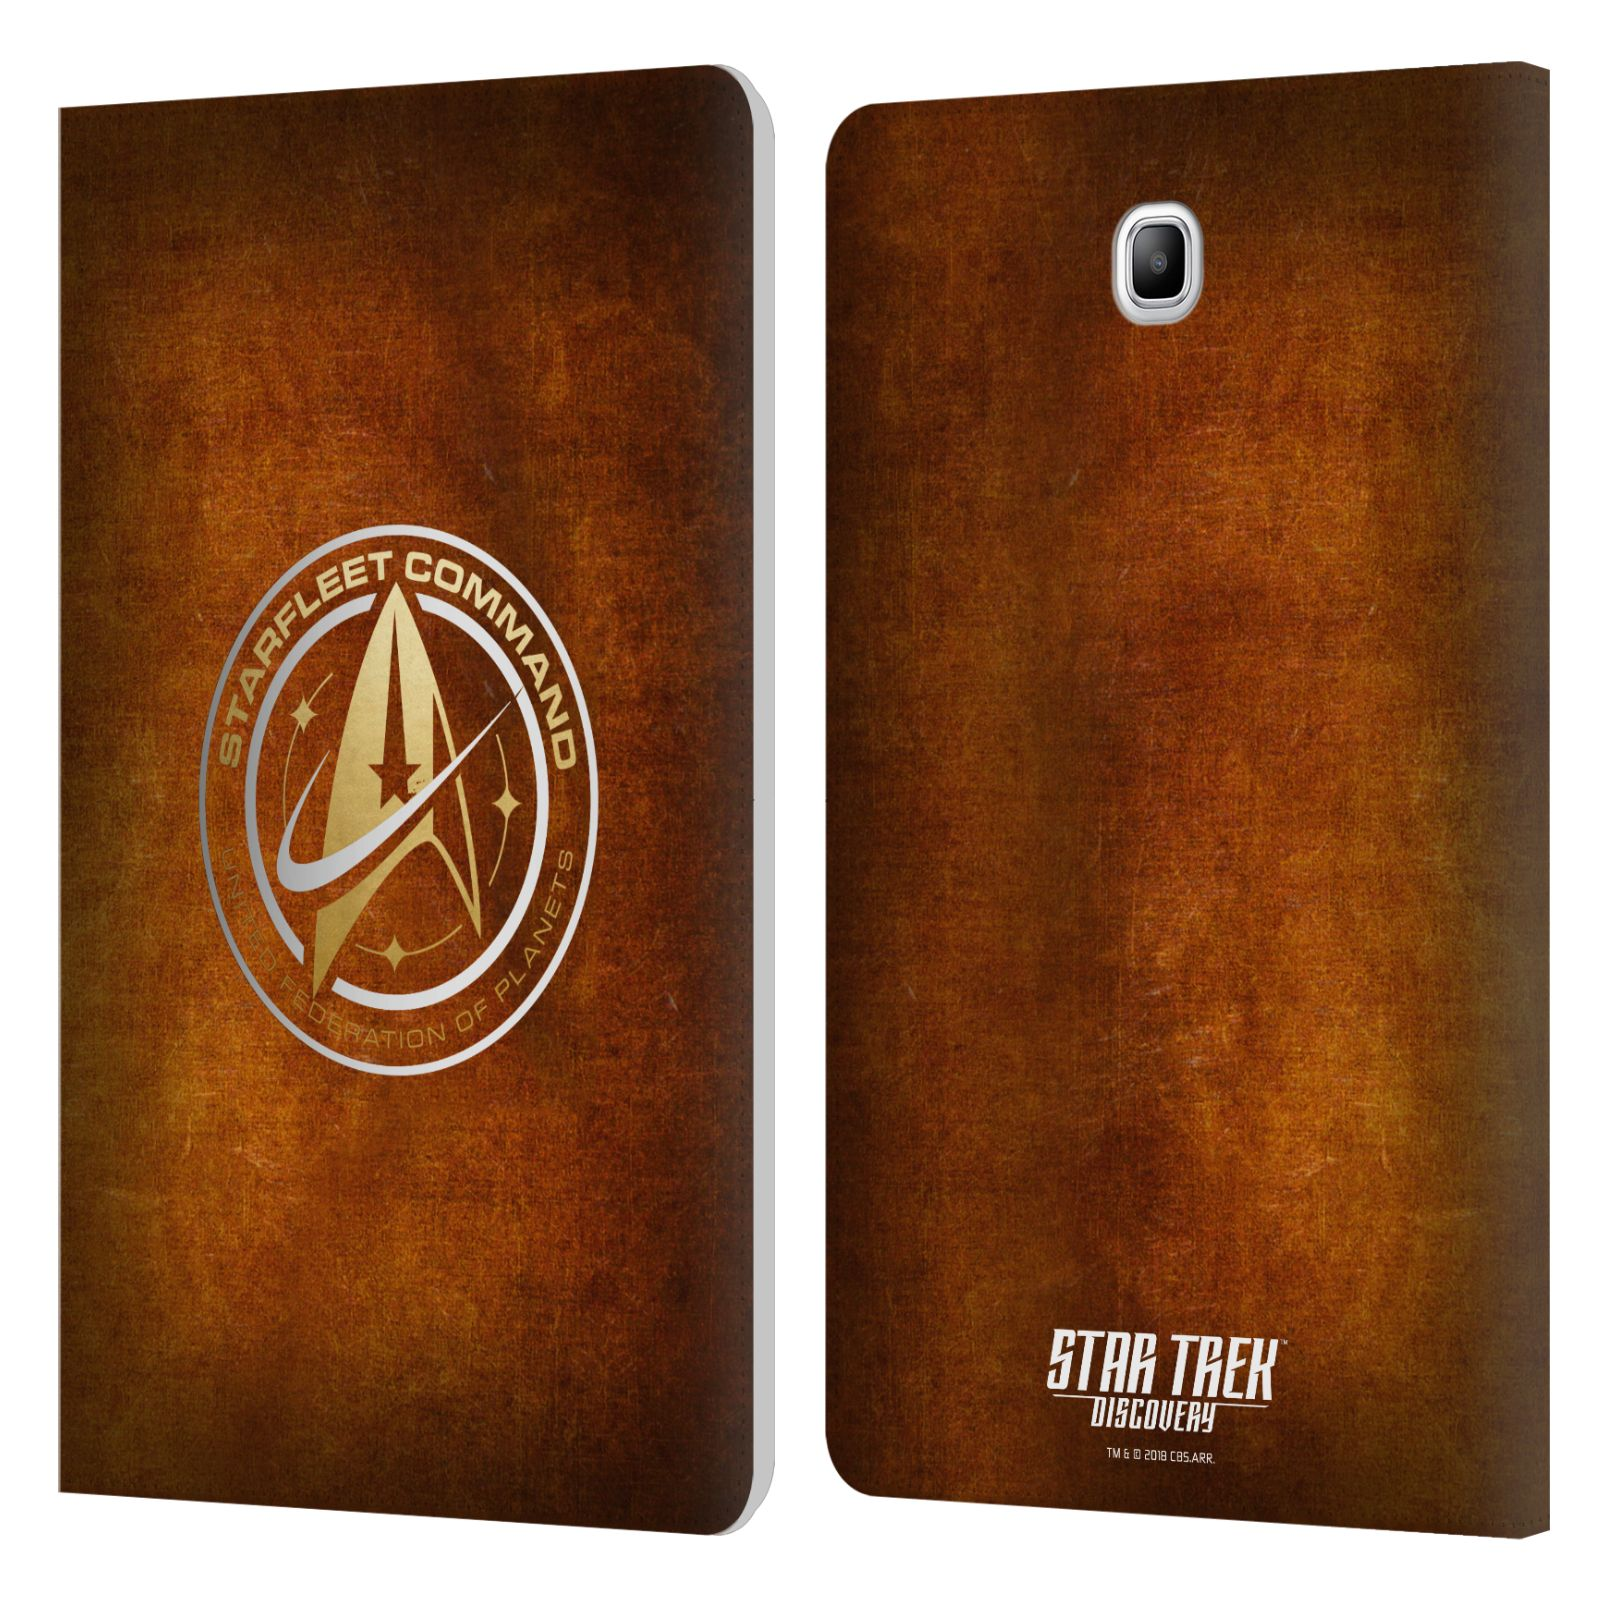 OFFICIAL-STAR-TREK-DISCOVERY-BADGES-LEATHER-BOOK-CASE-FOR-SAMSUNG-GALAXY-TABLETS